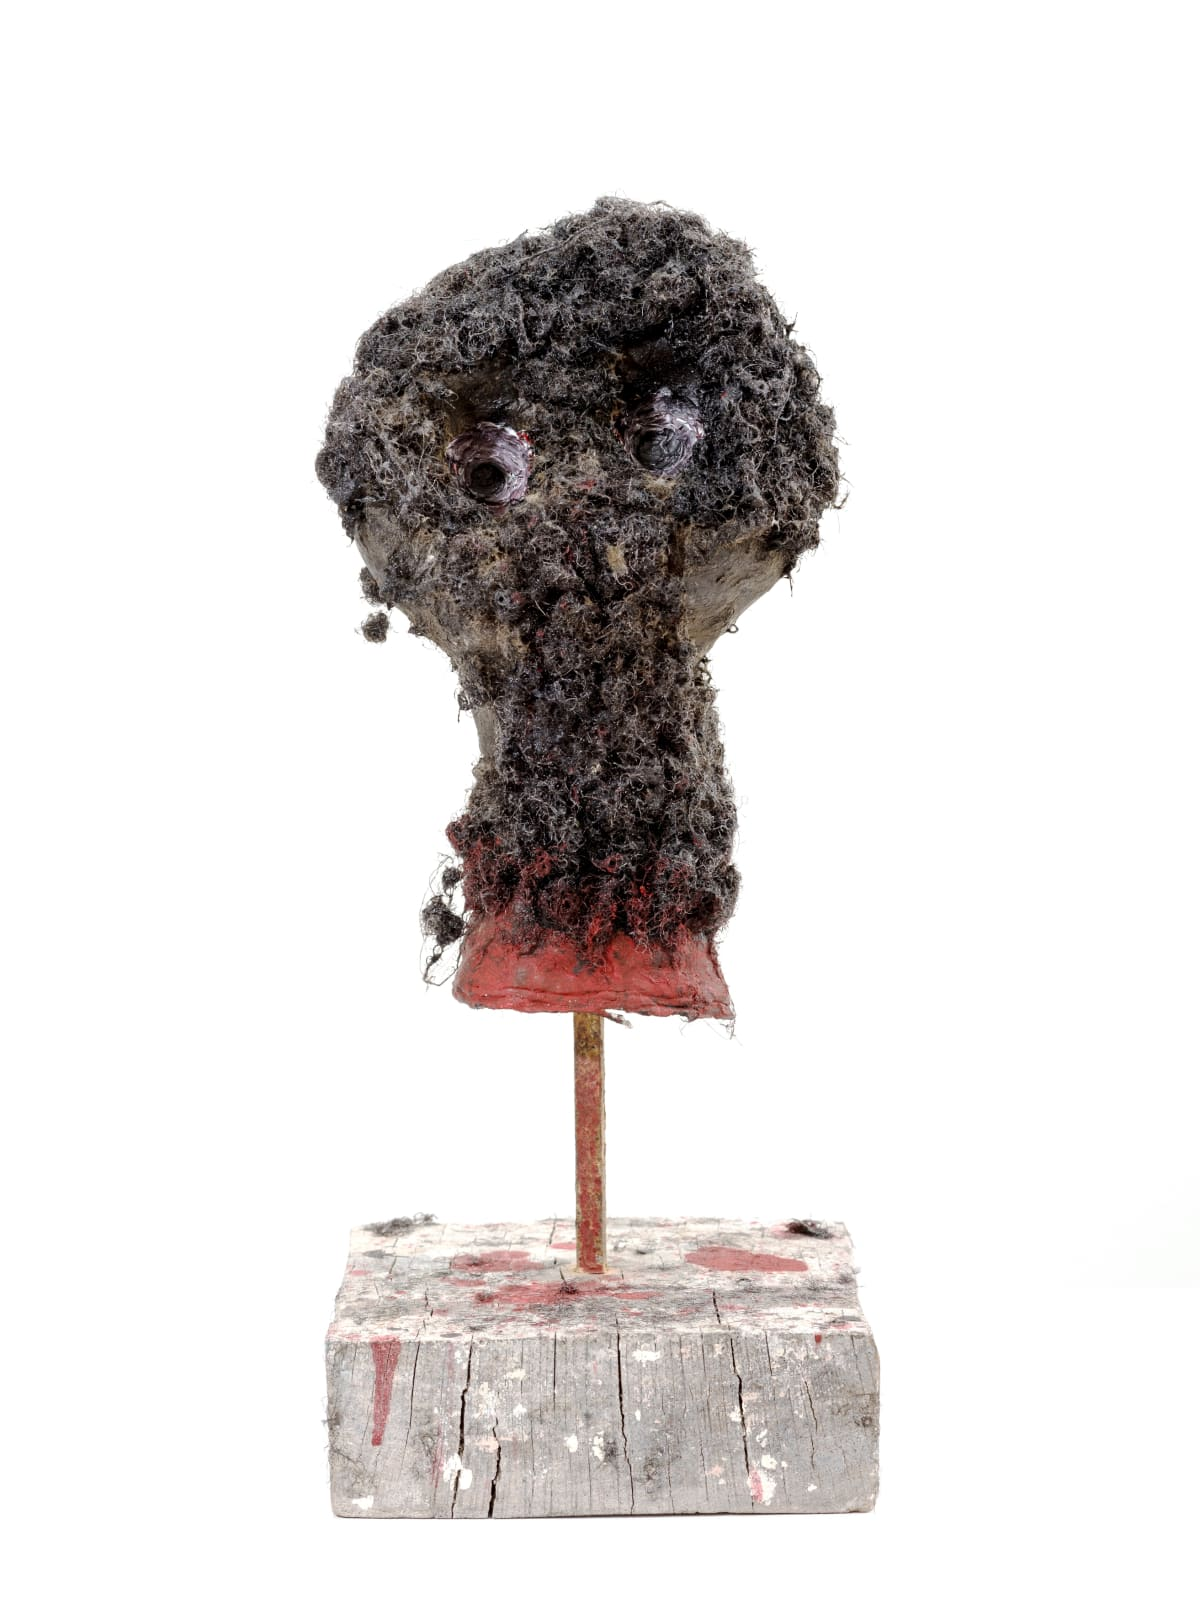 Adjani Okpu-Egbe, A French Soldier 's Trophy Head in Cameroon 1950's/1960's, 2019